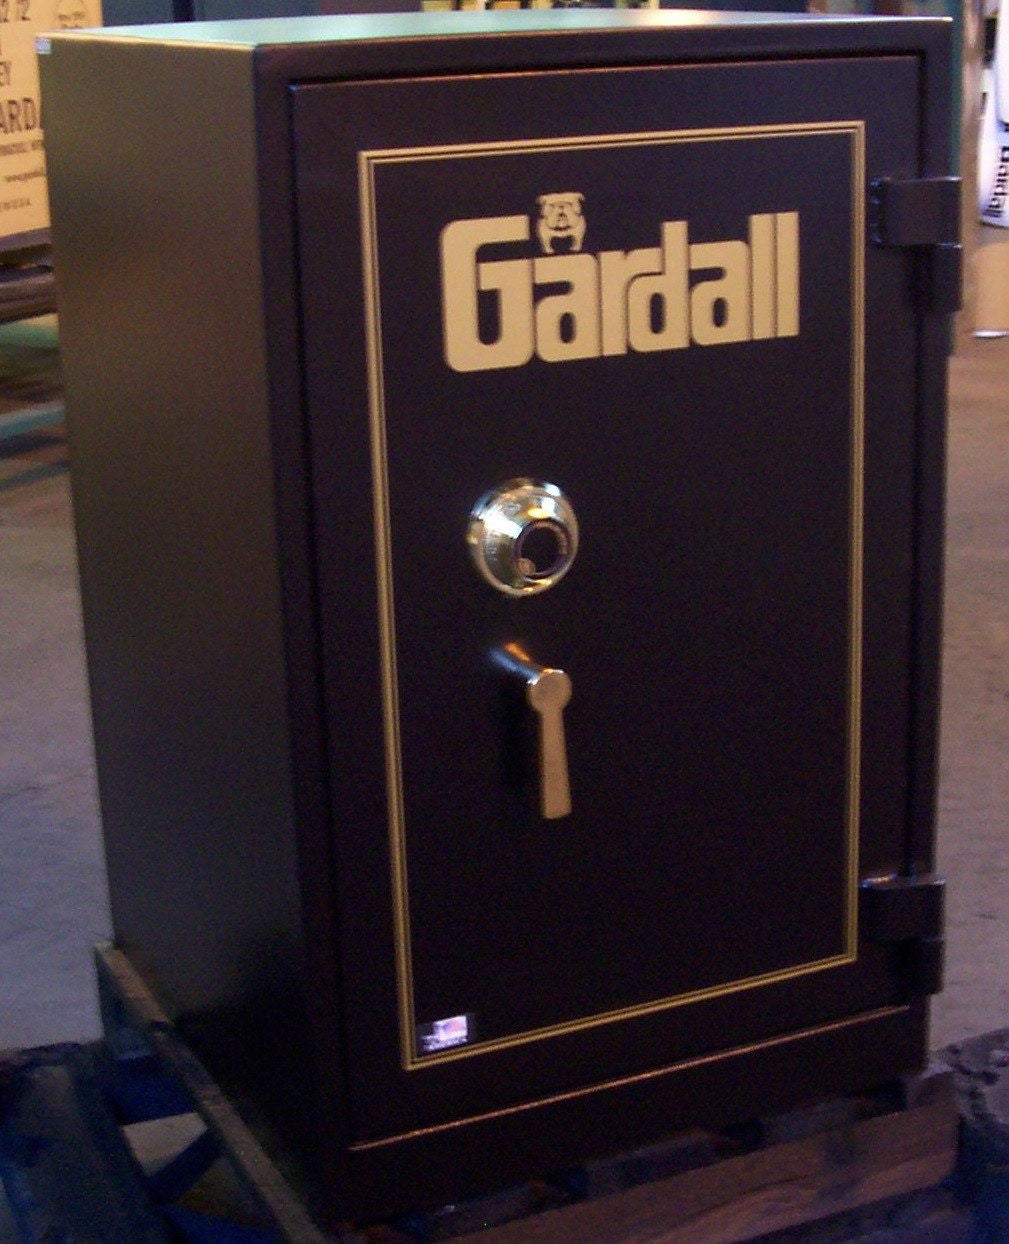 Gardall 171718-2 Burglar & Two Hour Fire Safe